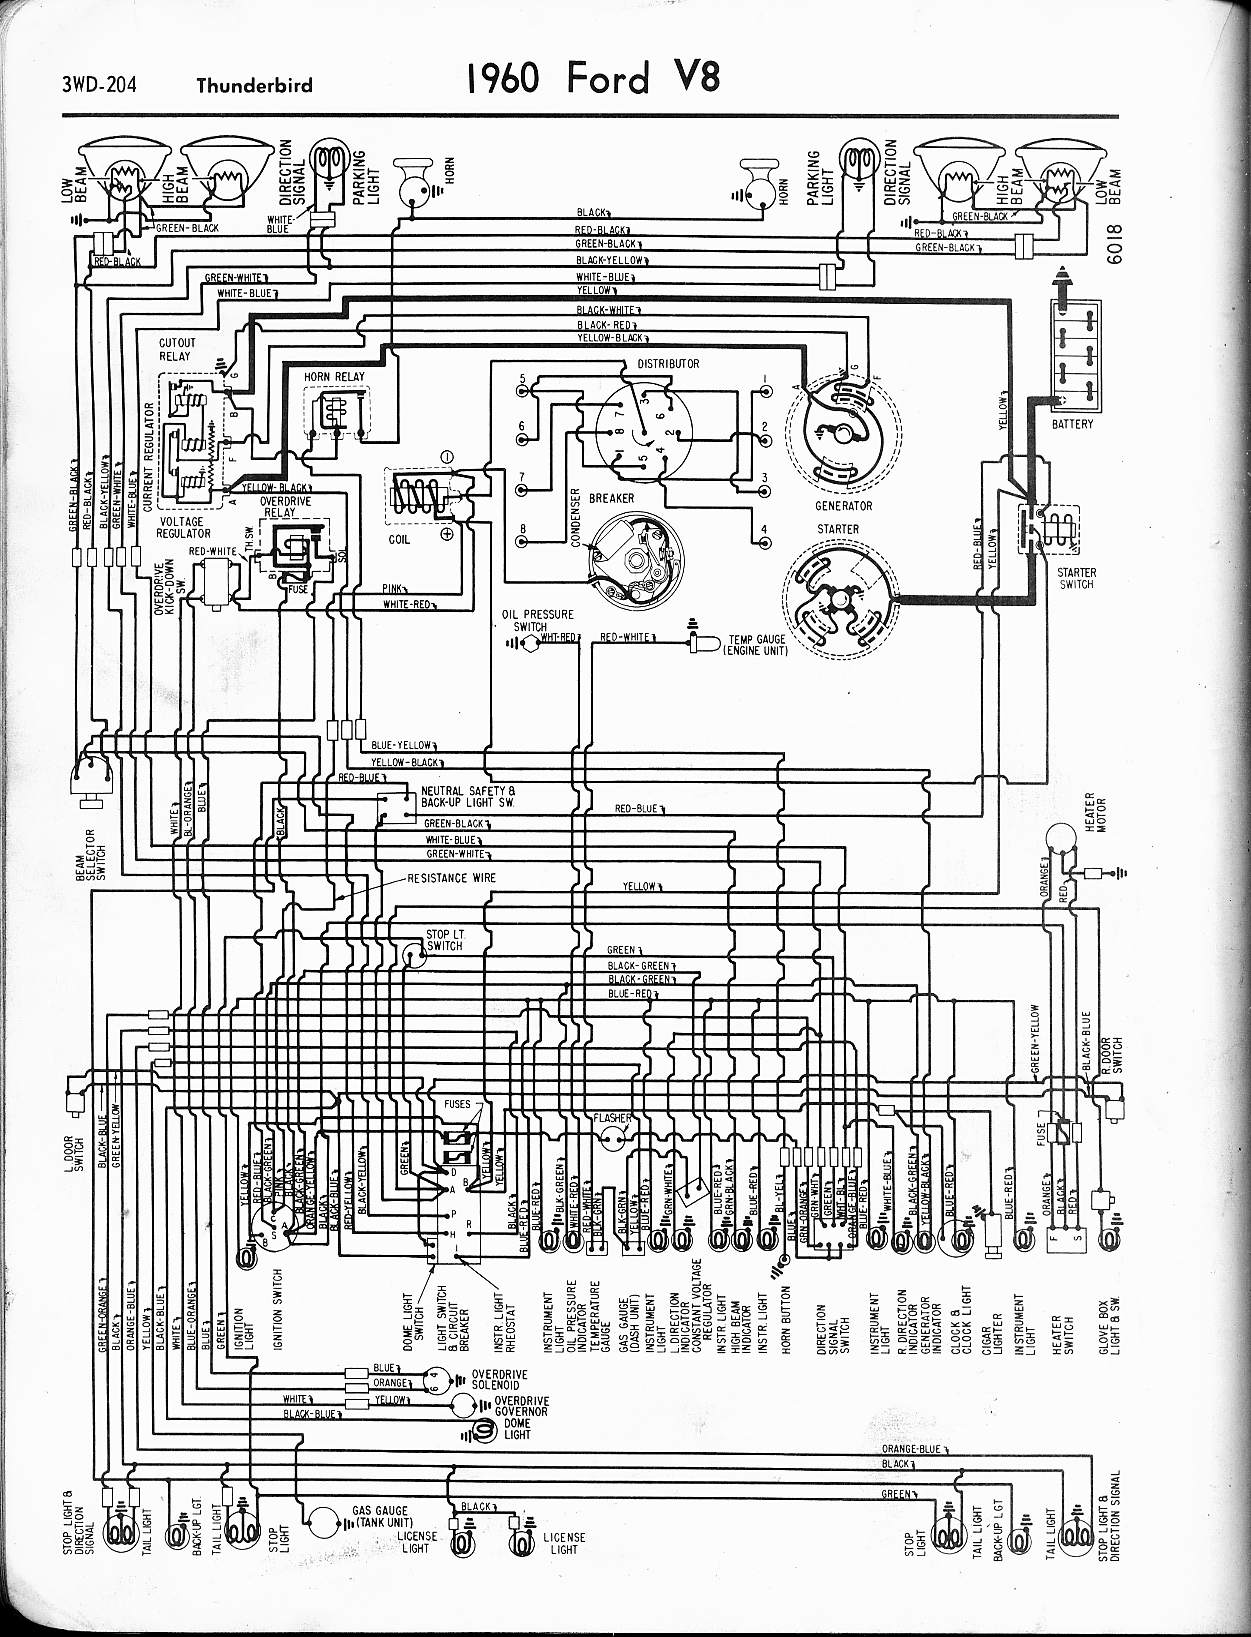 MWire5765 204 57 65 ford wiring diagrams 1965 ford thunderbird wiring diagram at crackthecode.co